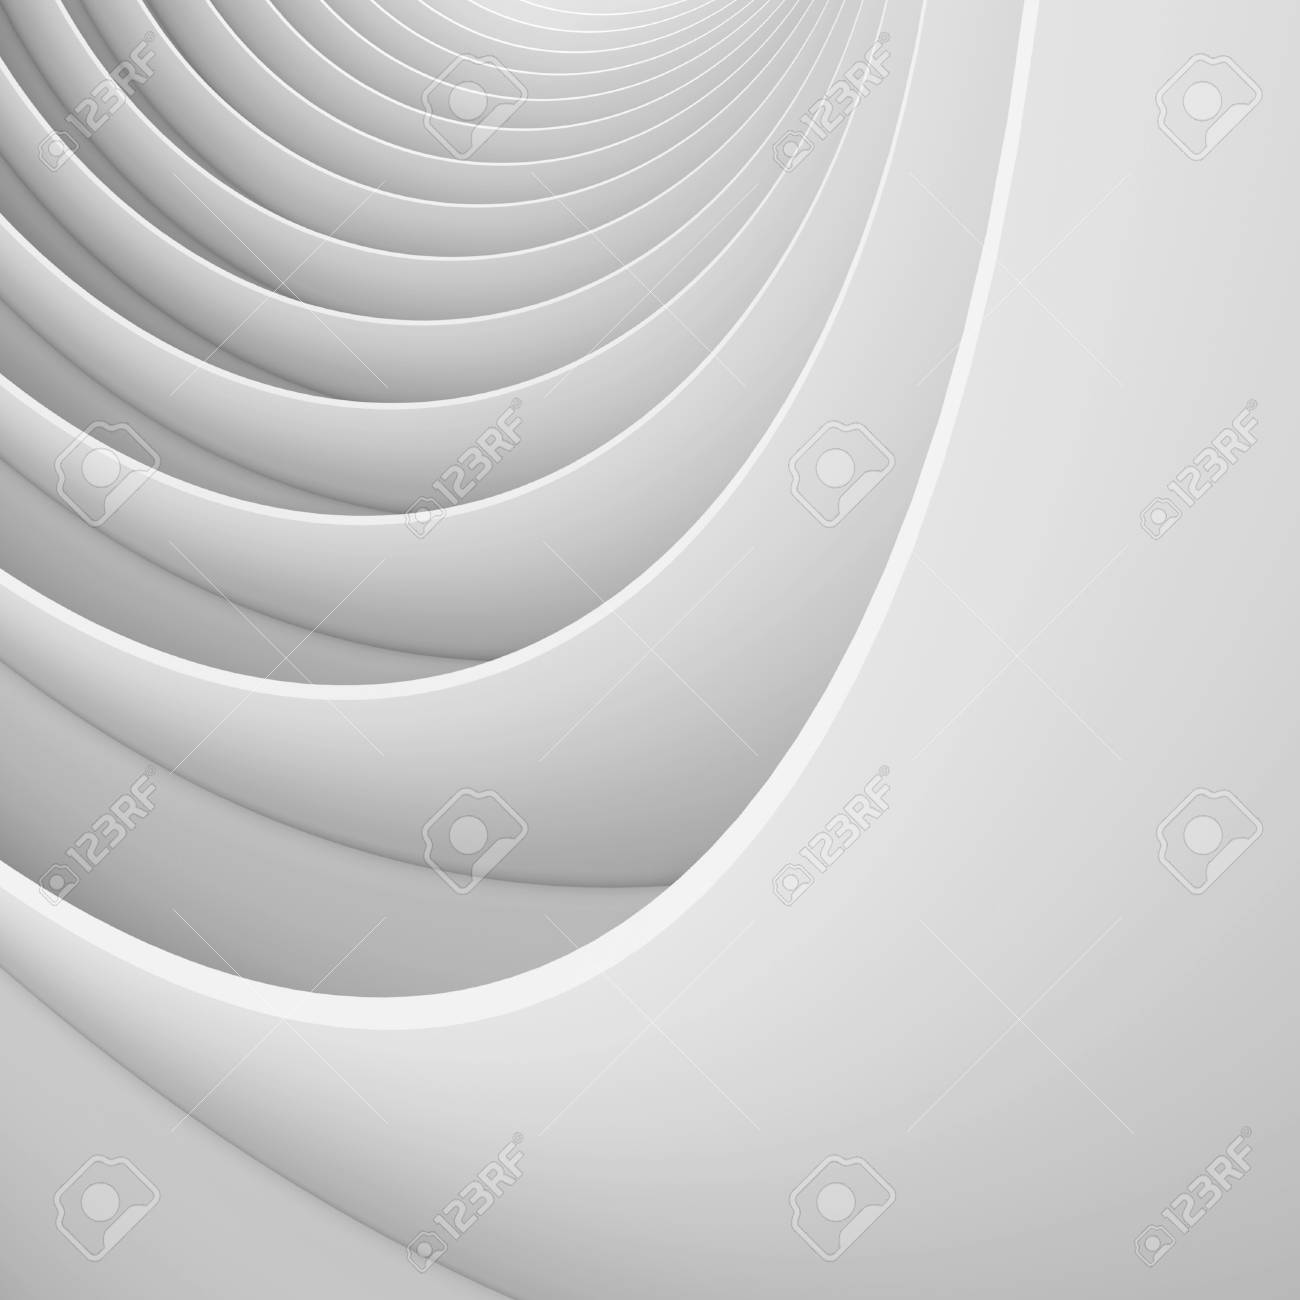 Abstract Architectural Shape Stock Photo - 10026975